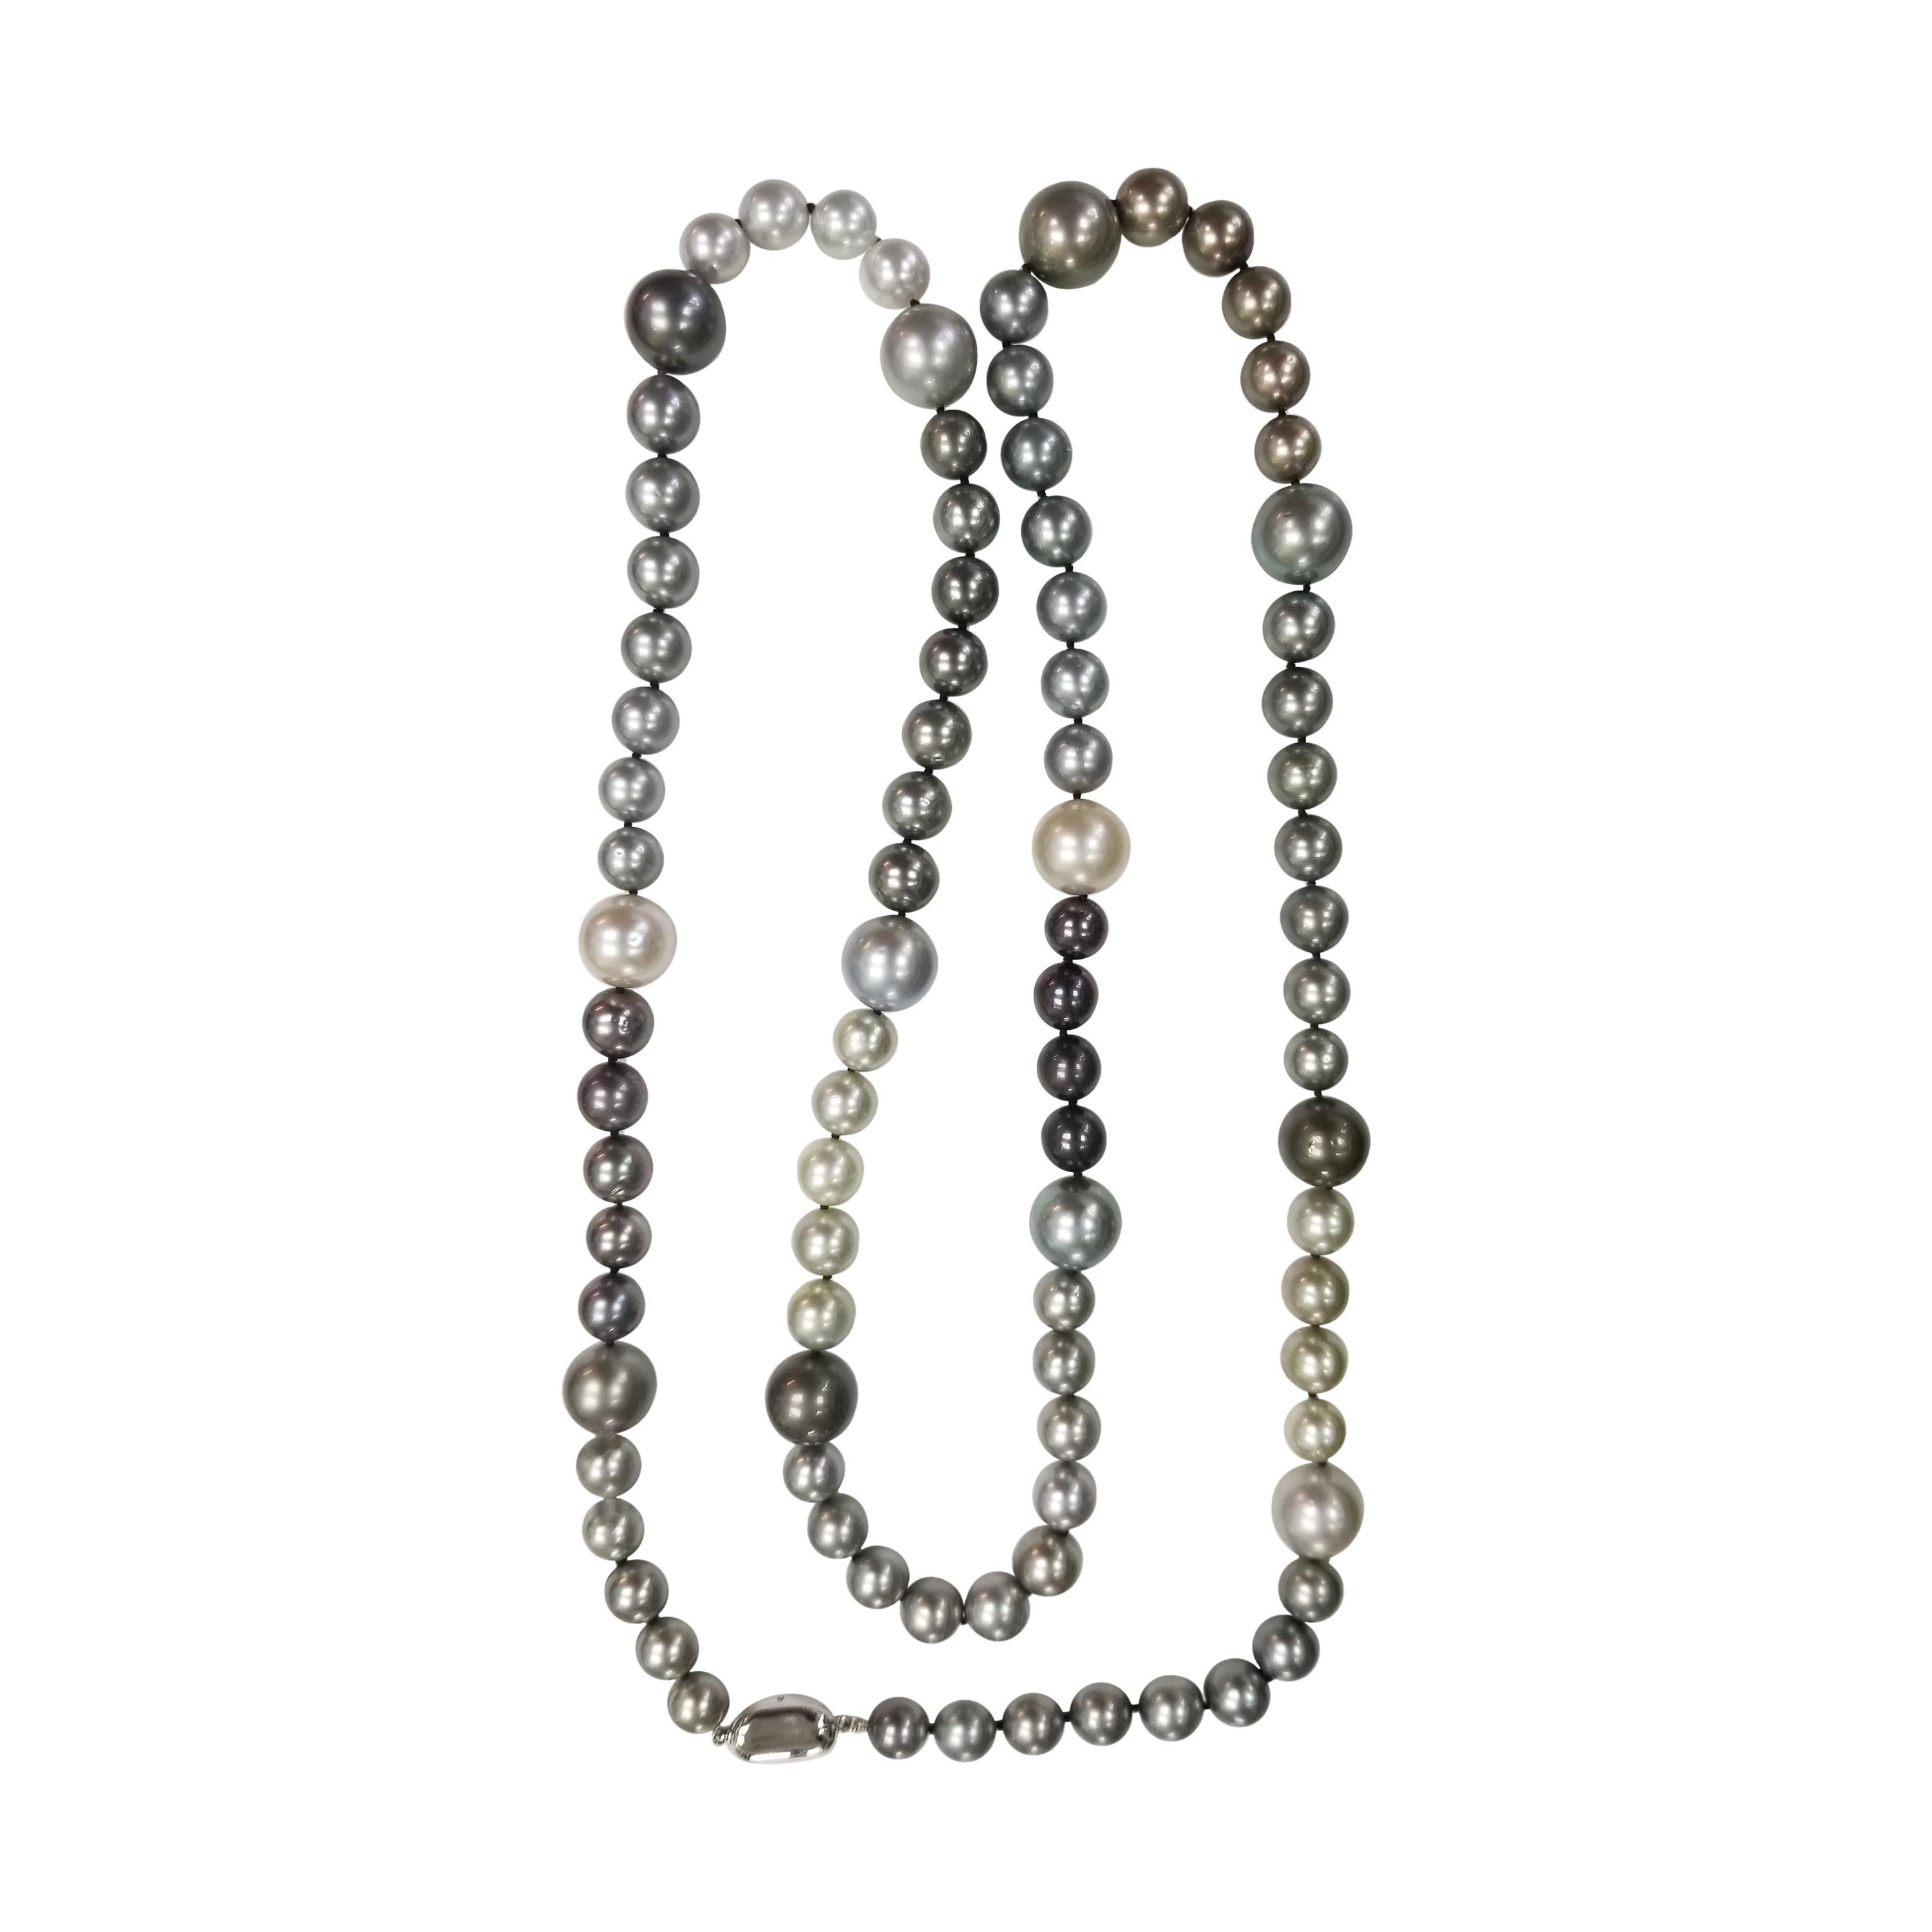 Tahitian Pearl Necklace with Pearls